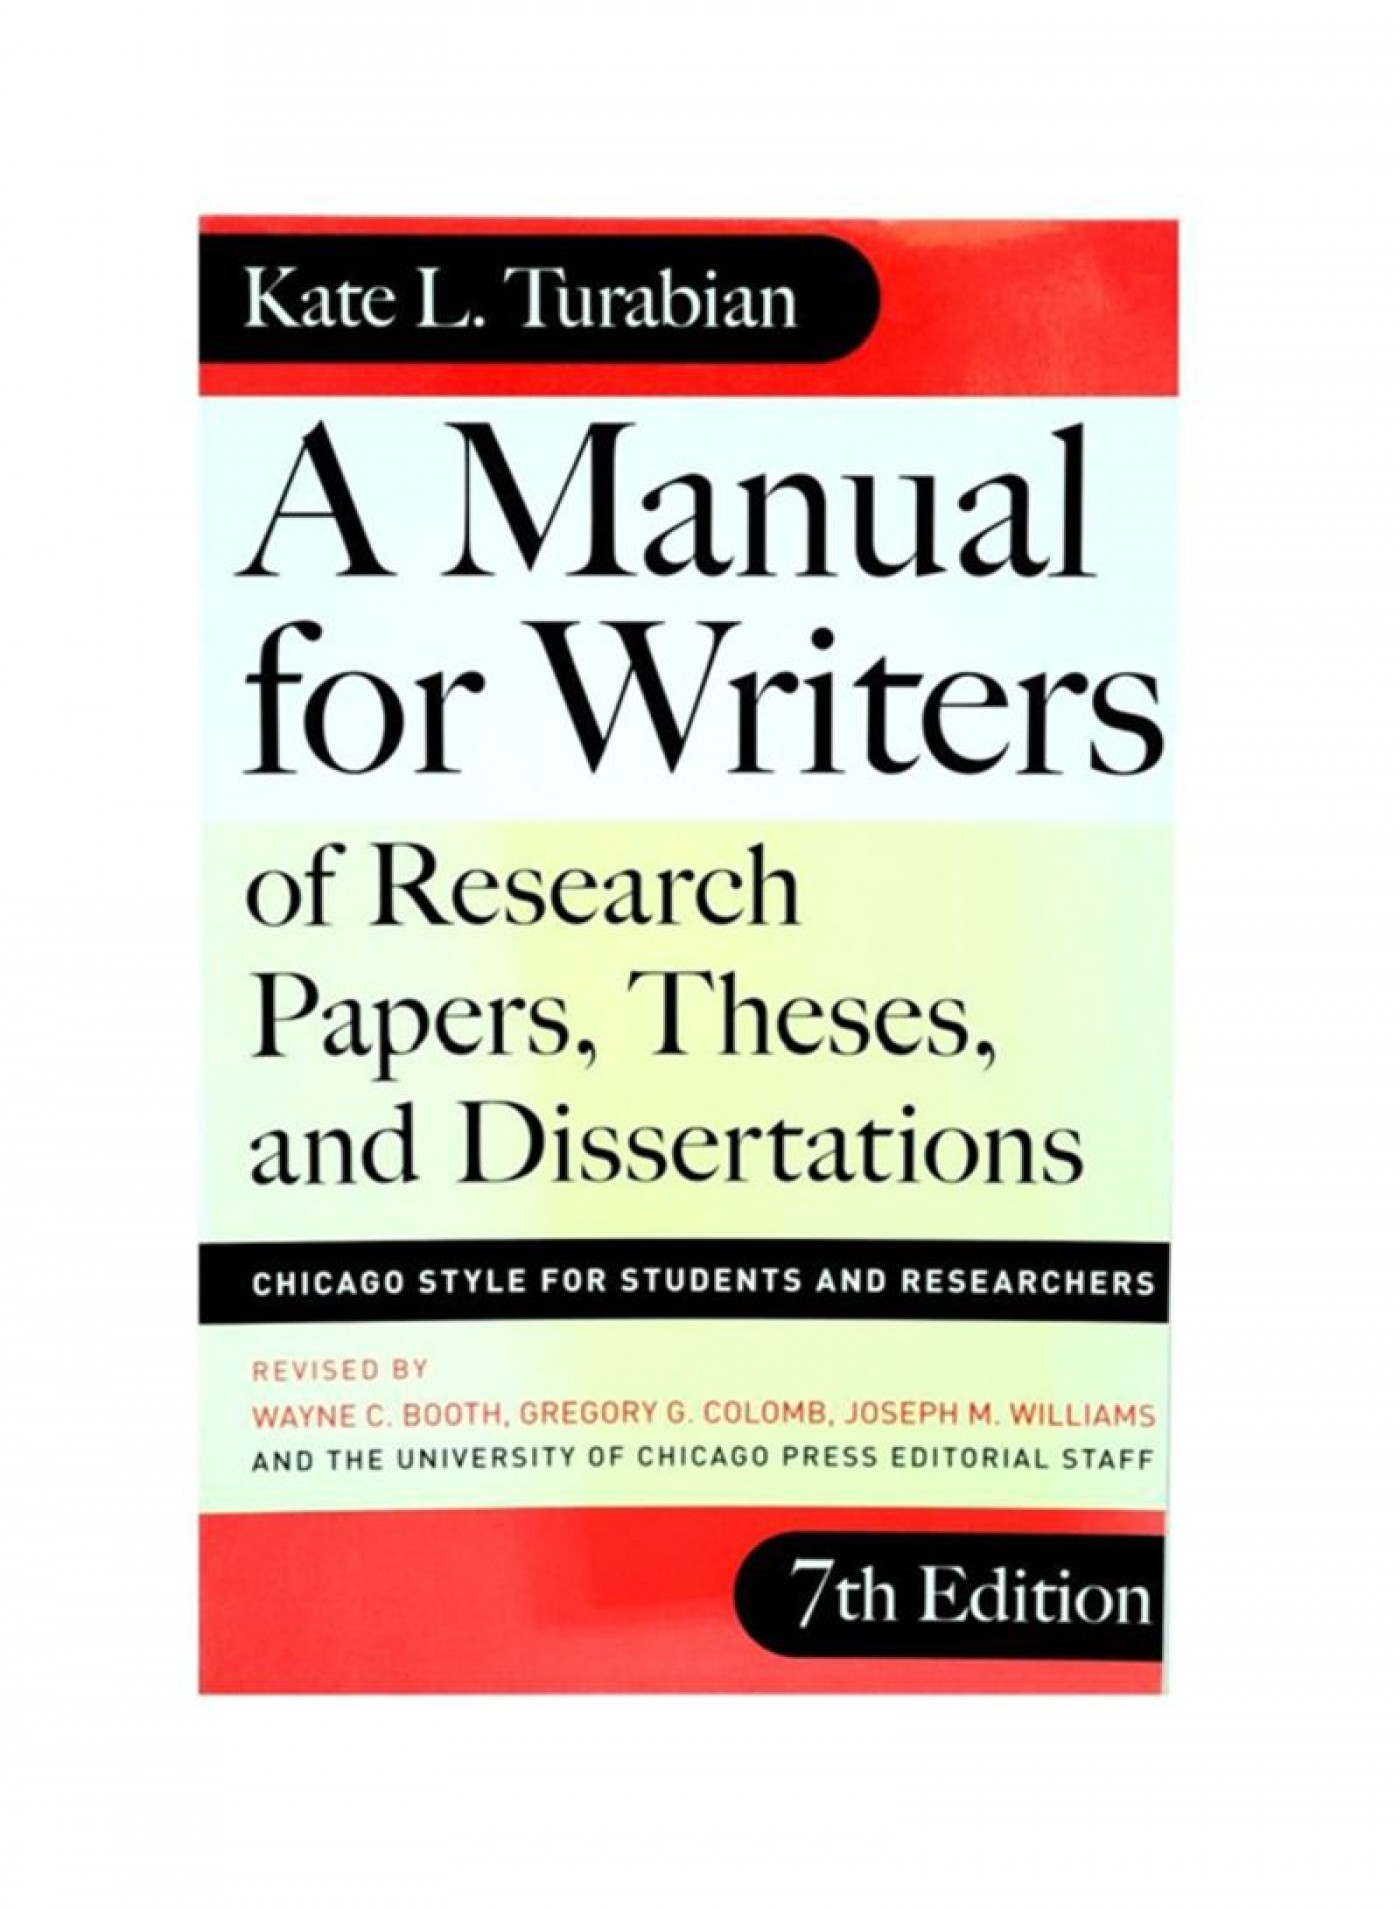 021 Research Paper N21270079a 1 Manual For Writers Of Papers Theses And Magnificent Dissertations A Amazon 9th Edition Pdf 8th 13 1400